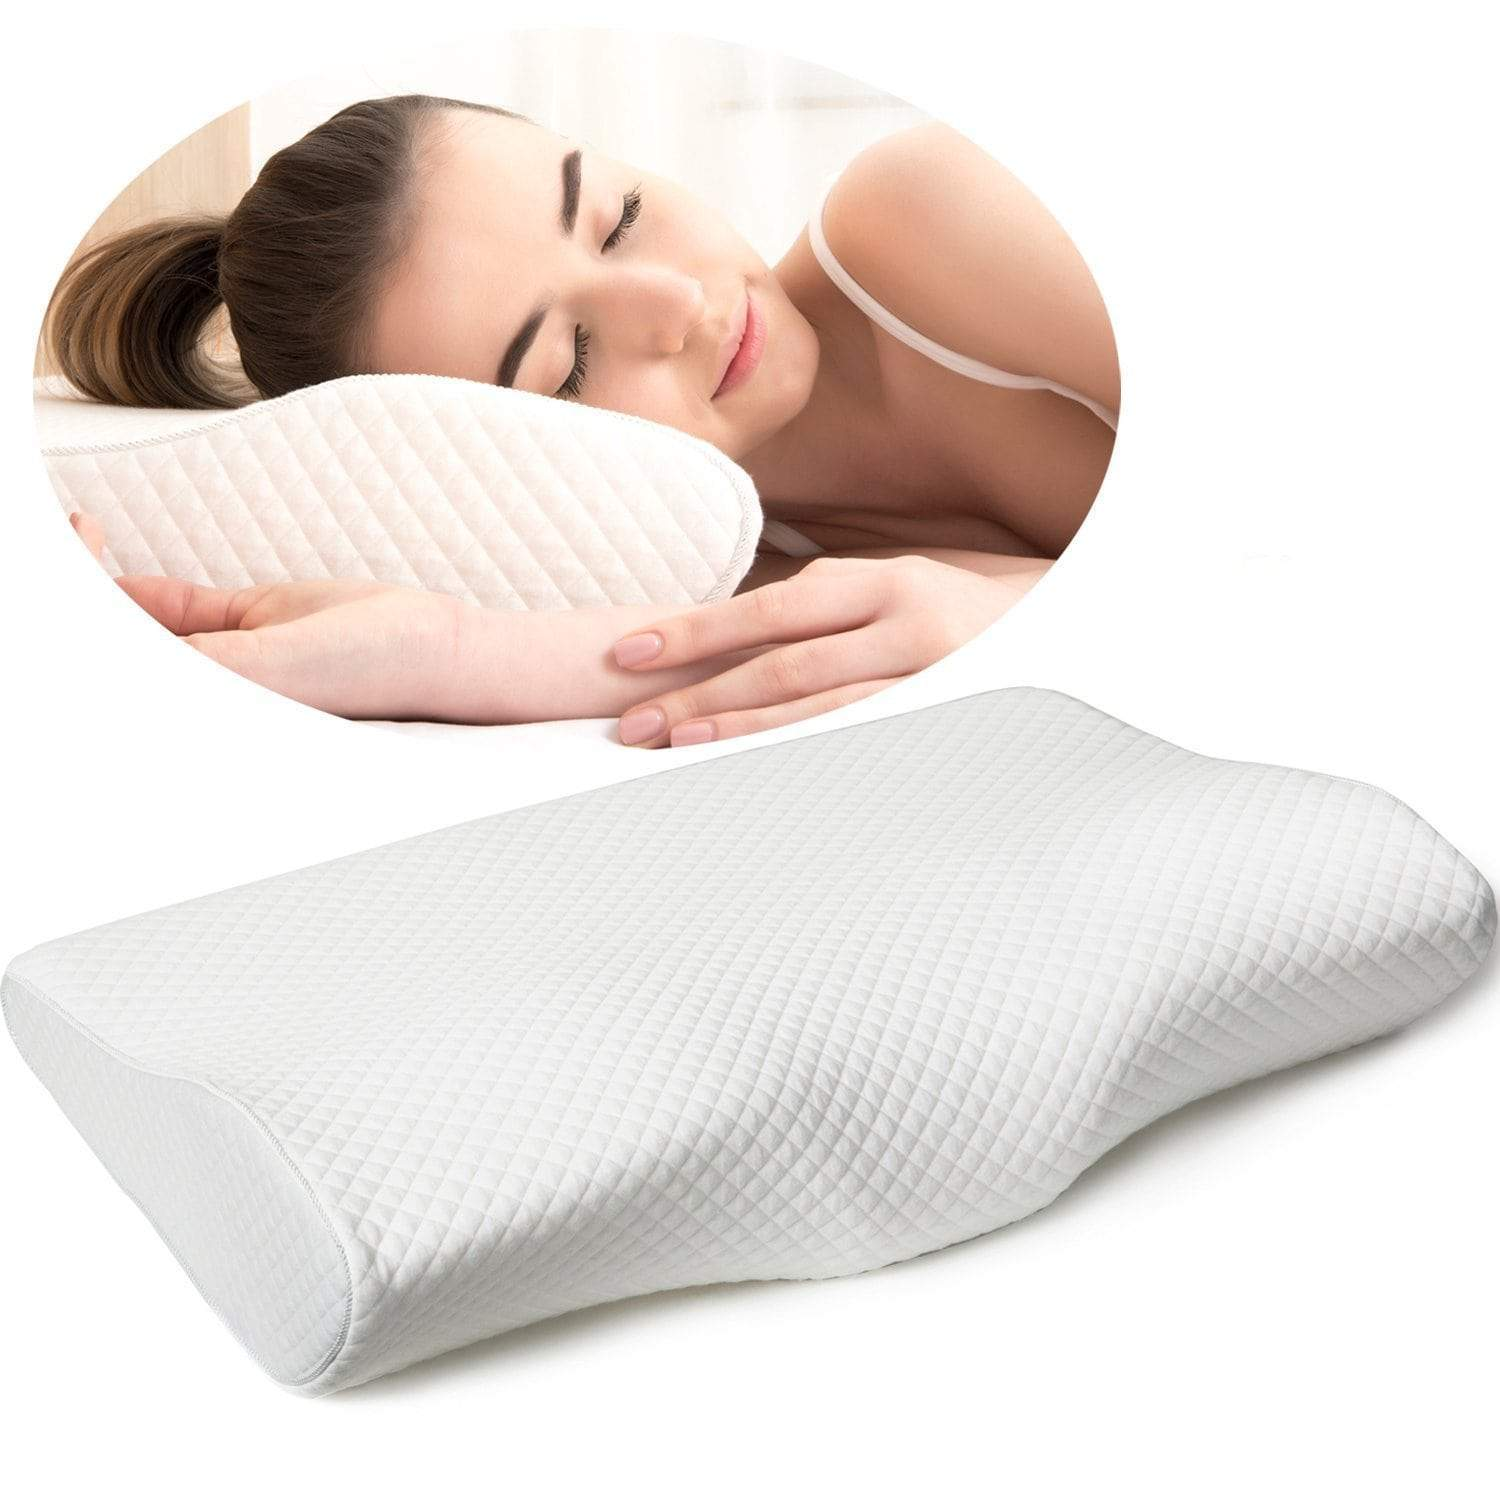 Cervical Orthopedic Pillow ★